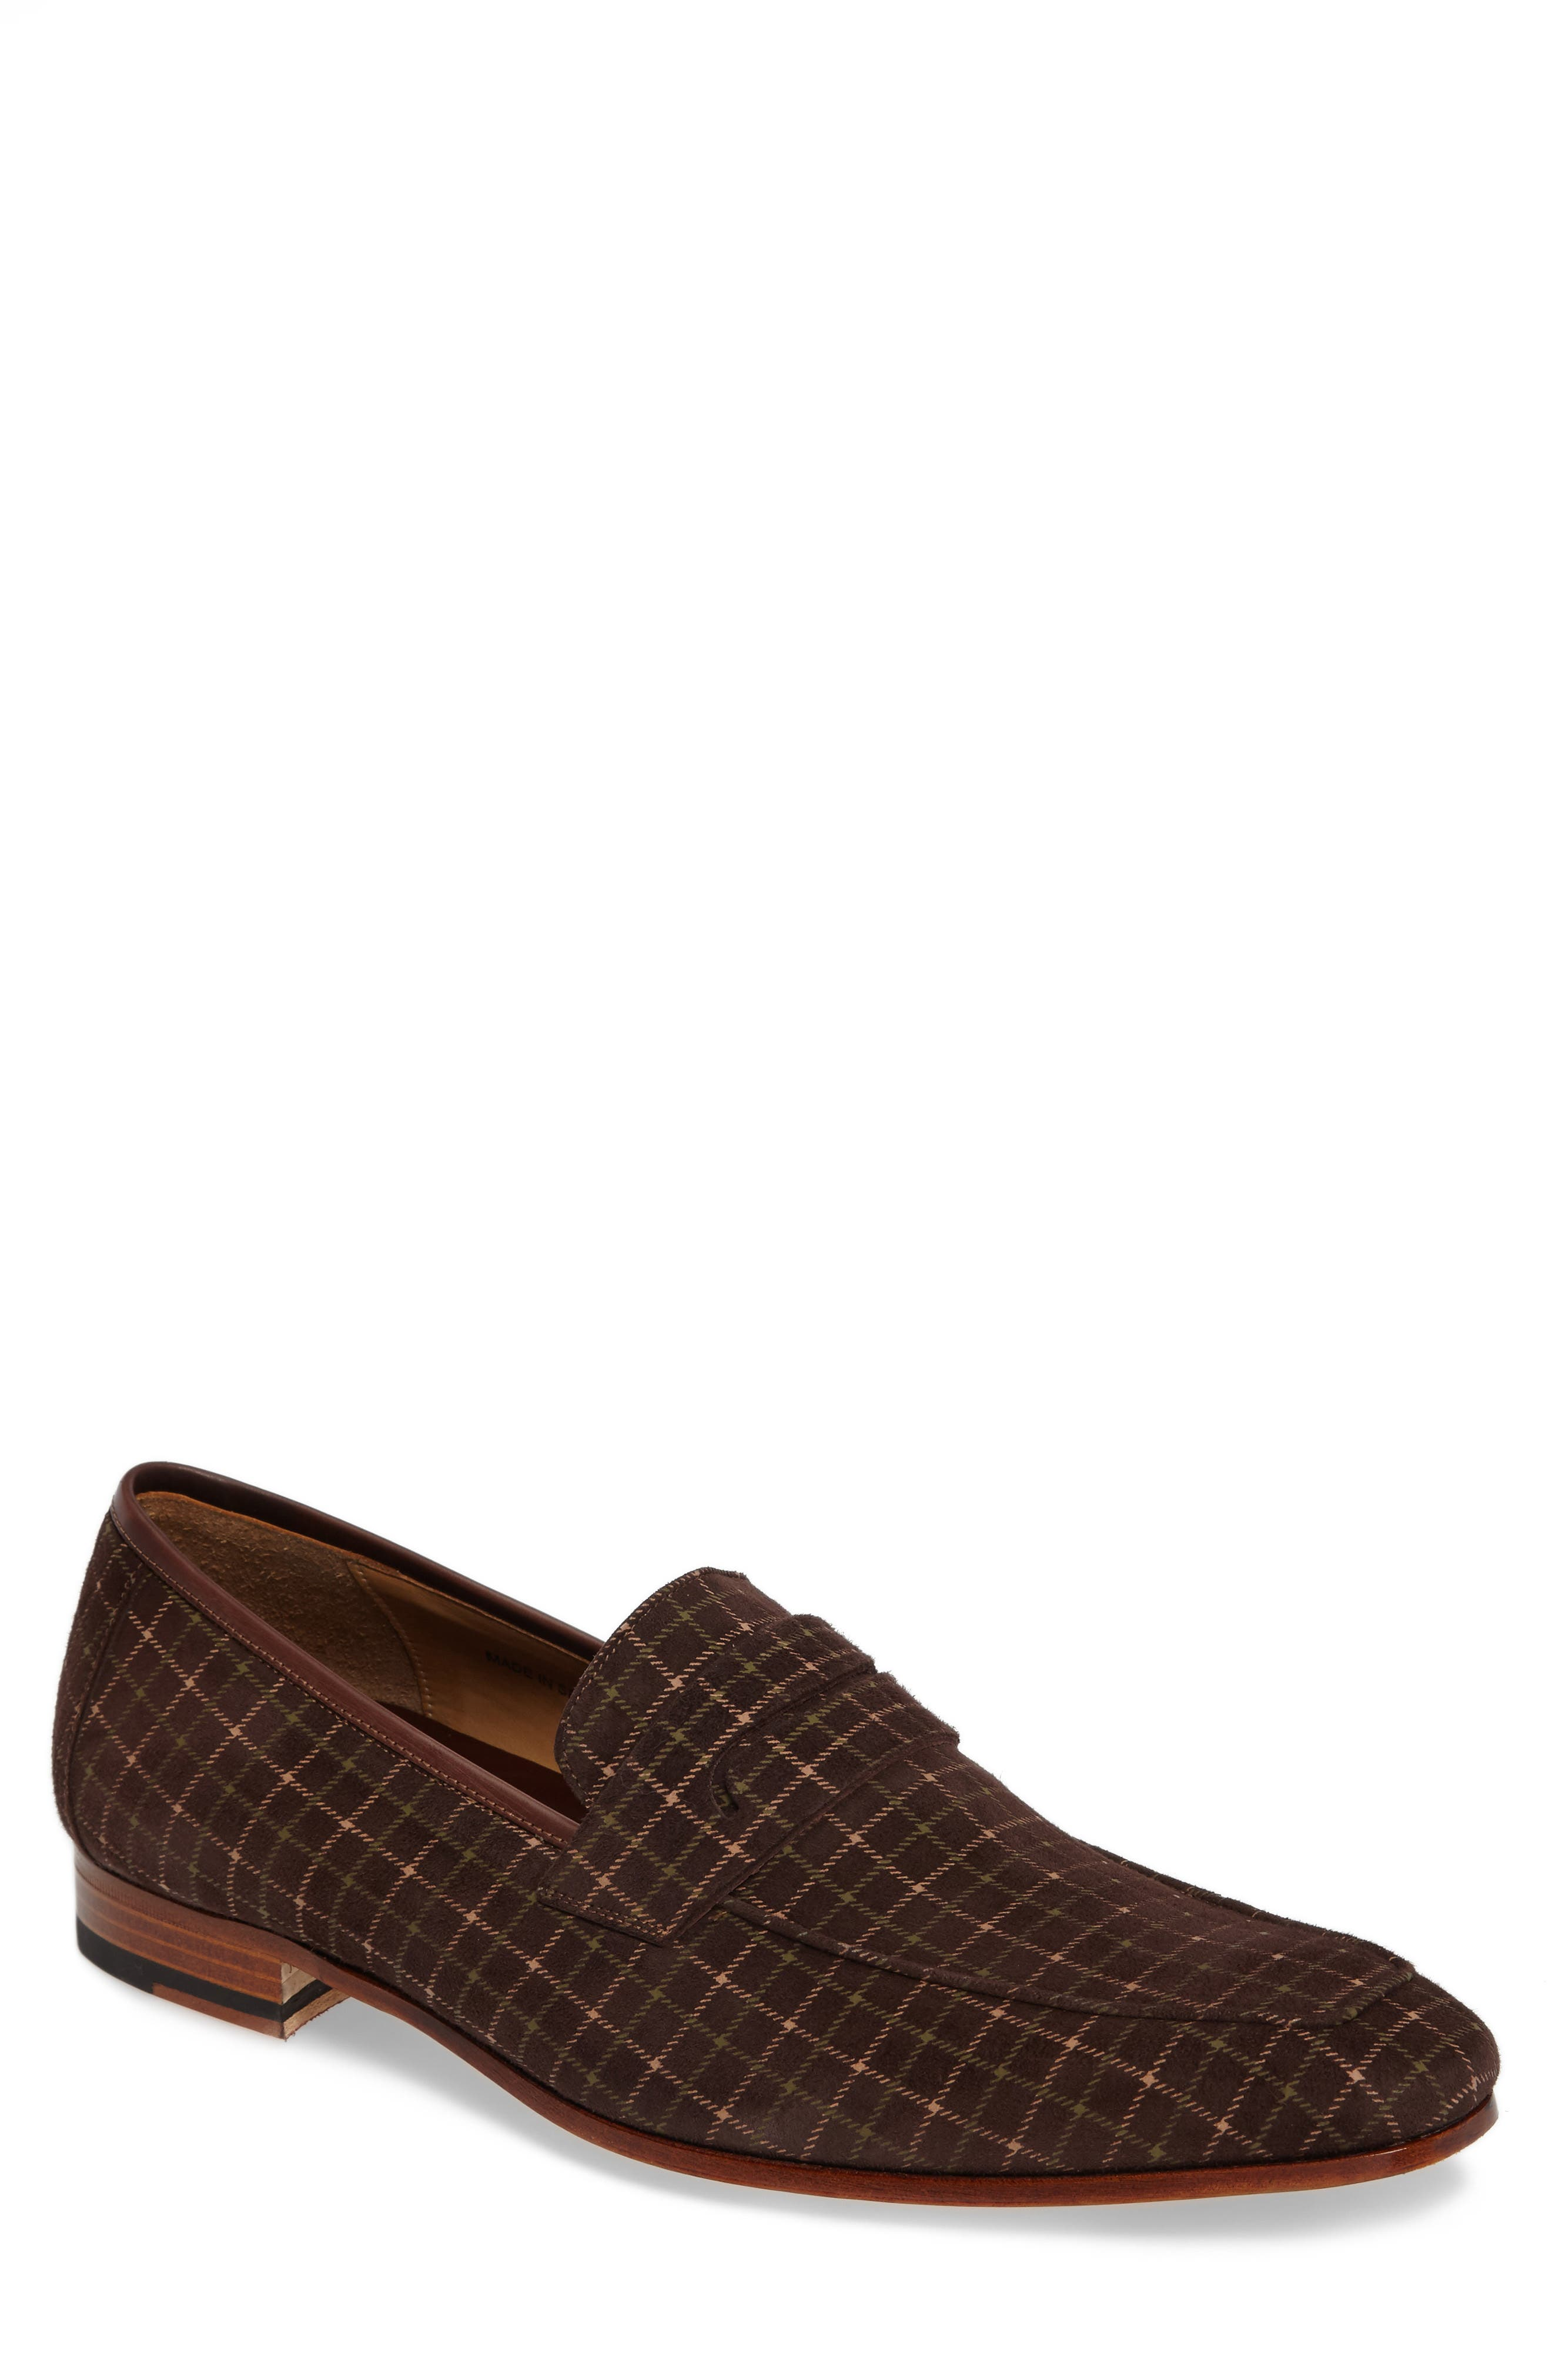 Galen Tattersall Penny Loafer,                         Main,                         color, BROWN SUEDE